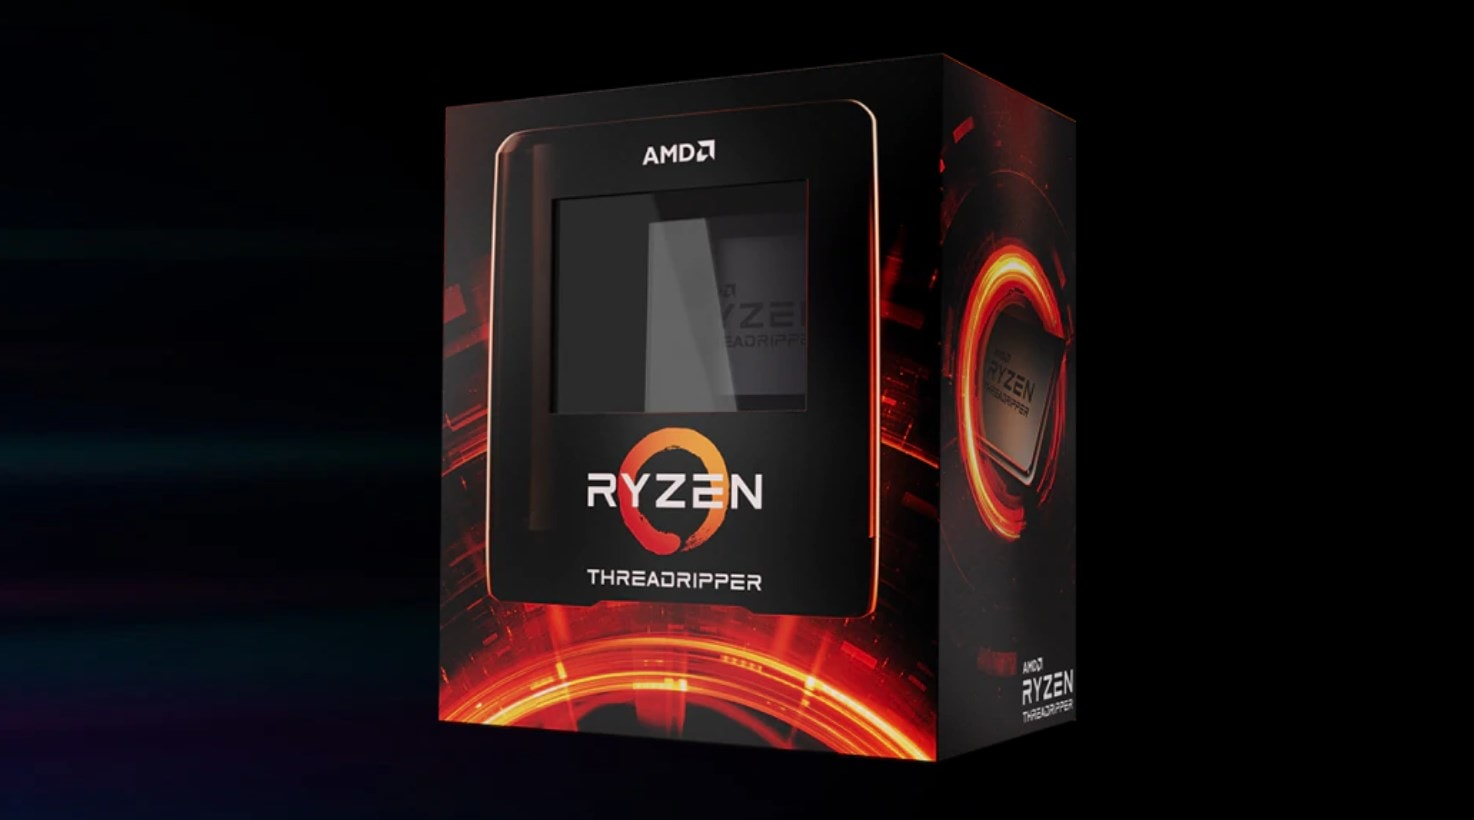 AMD releases 16, 24, 32, and 64-core processors today with monster performance